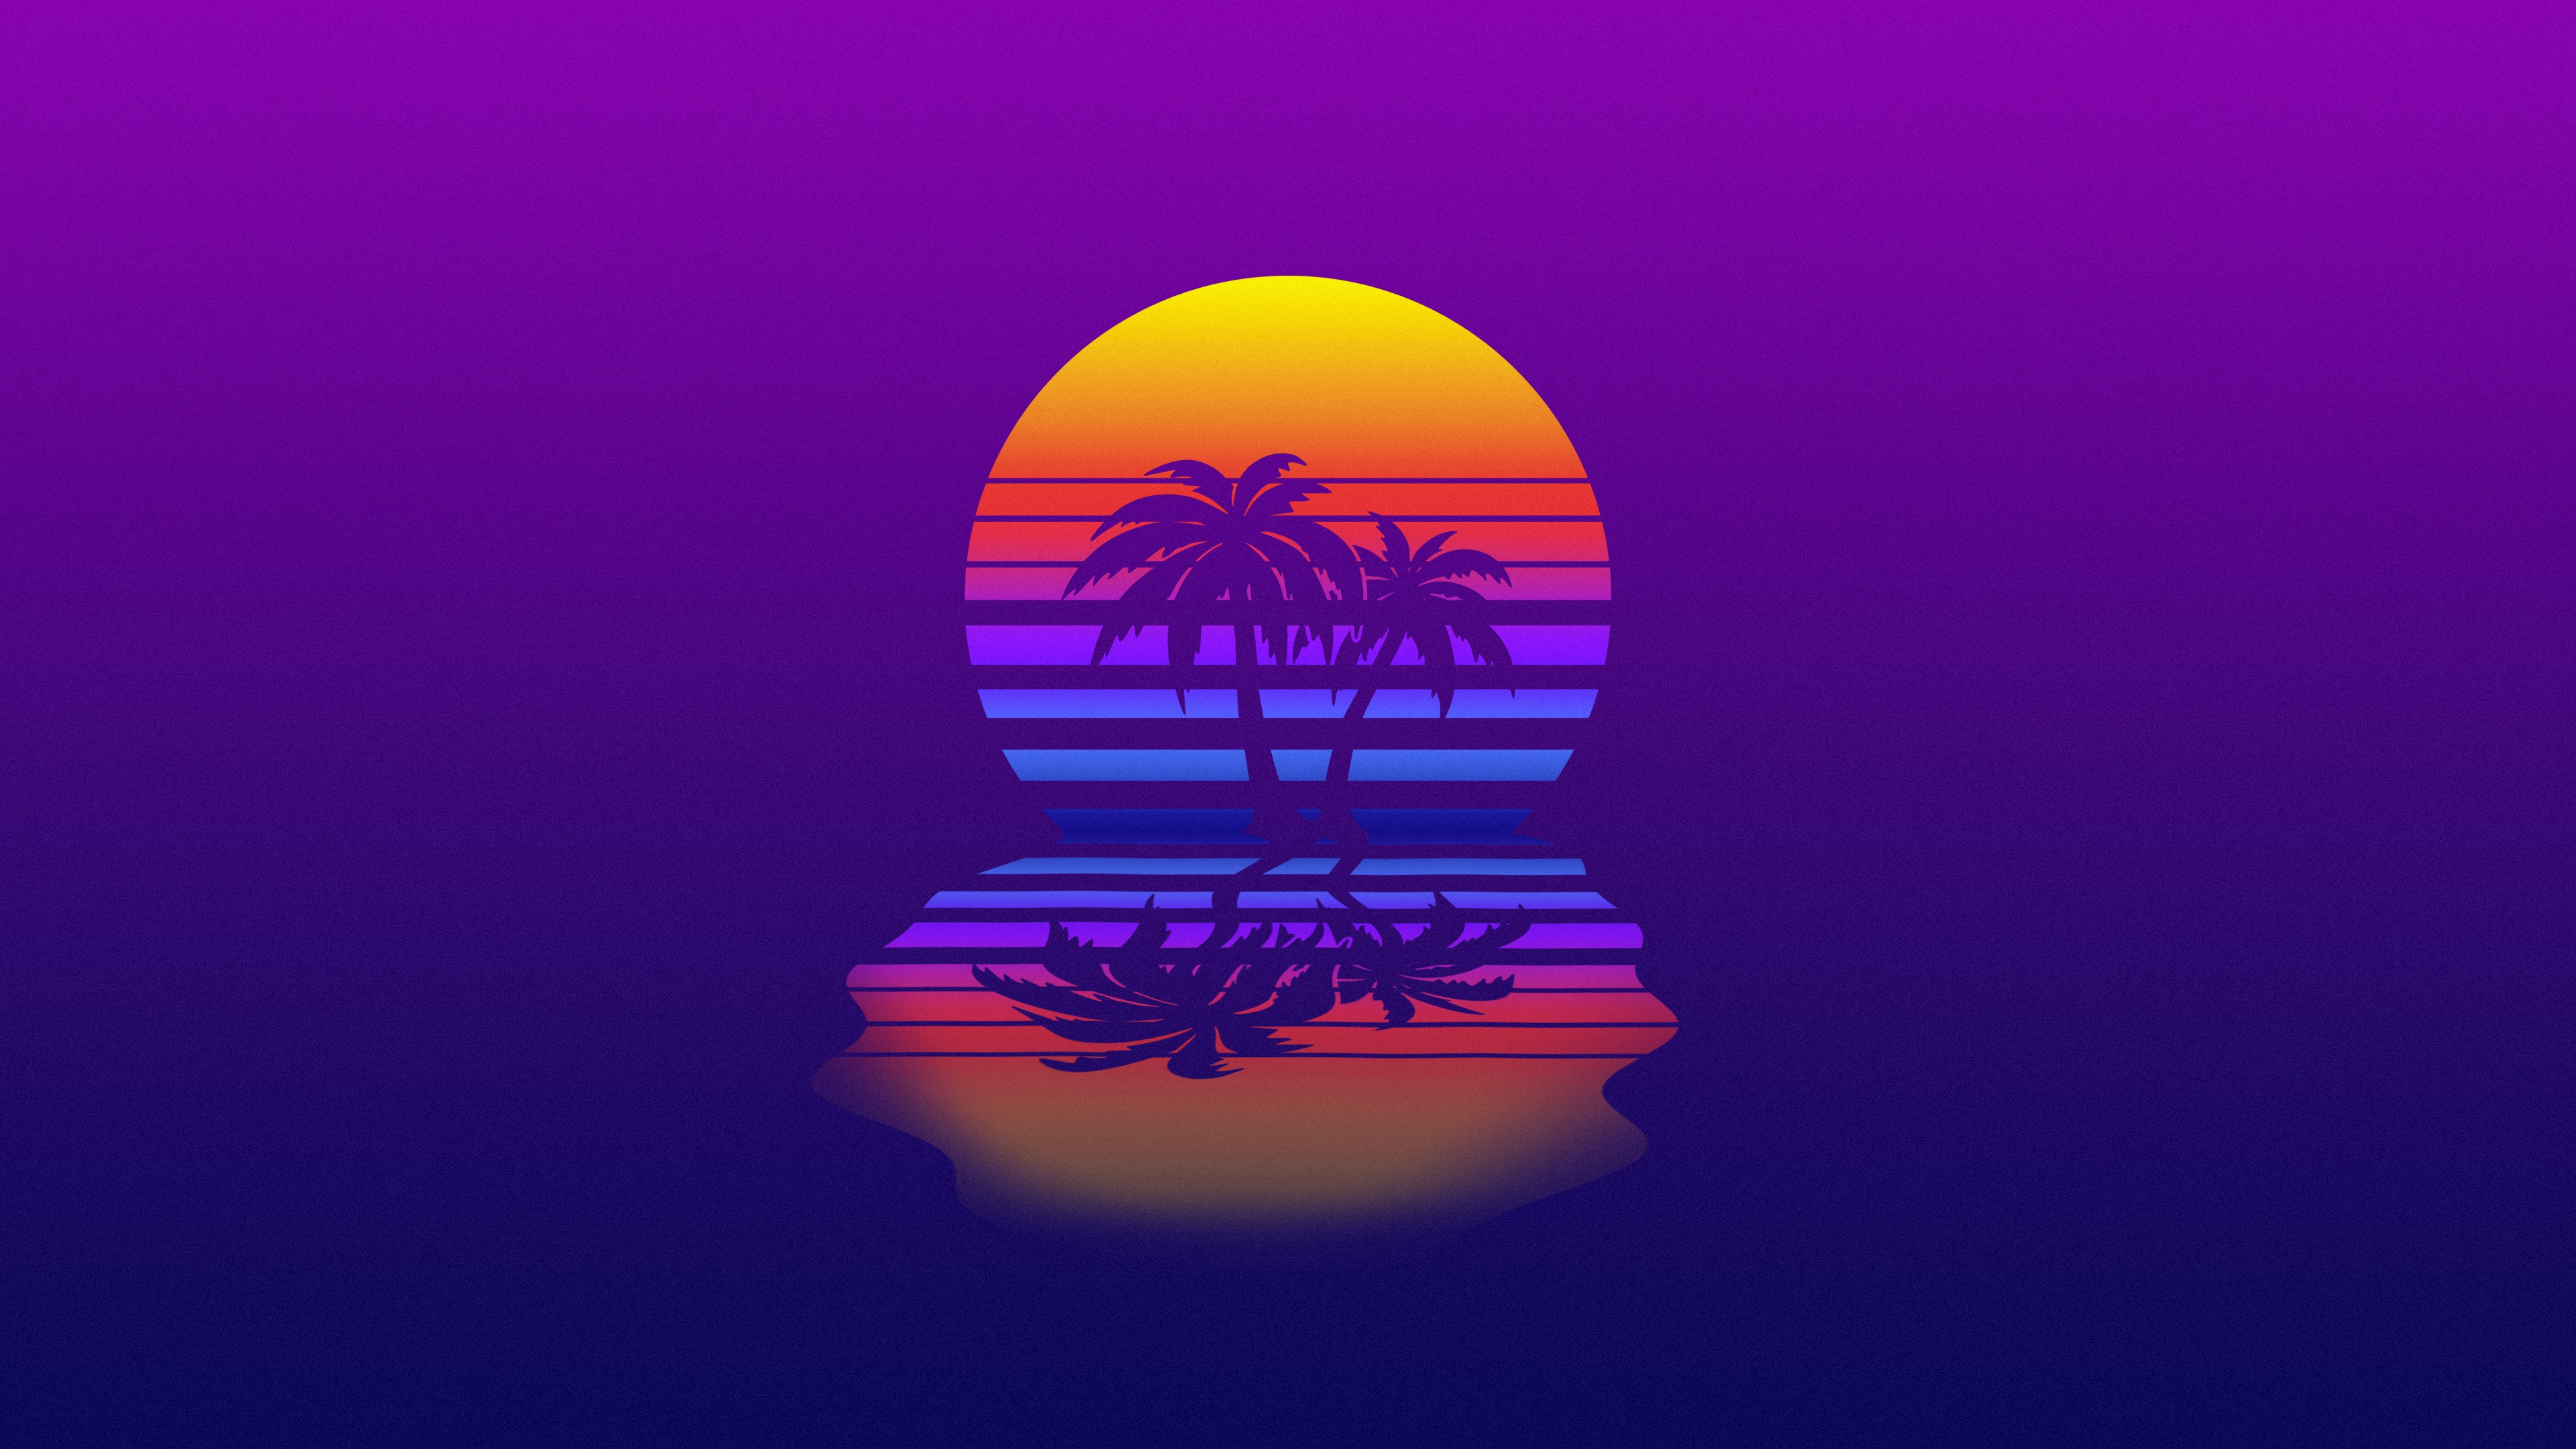 Synthwave palm tree wallpaper